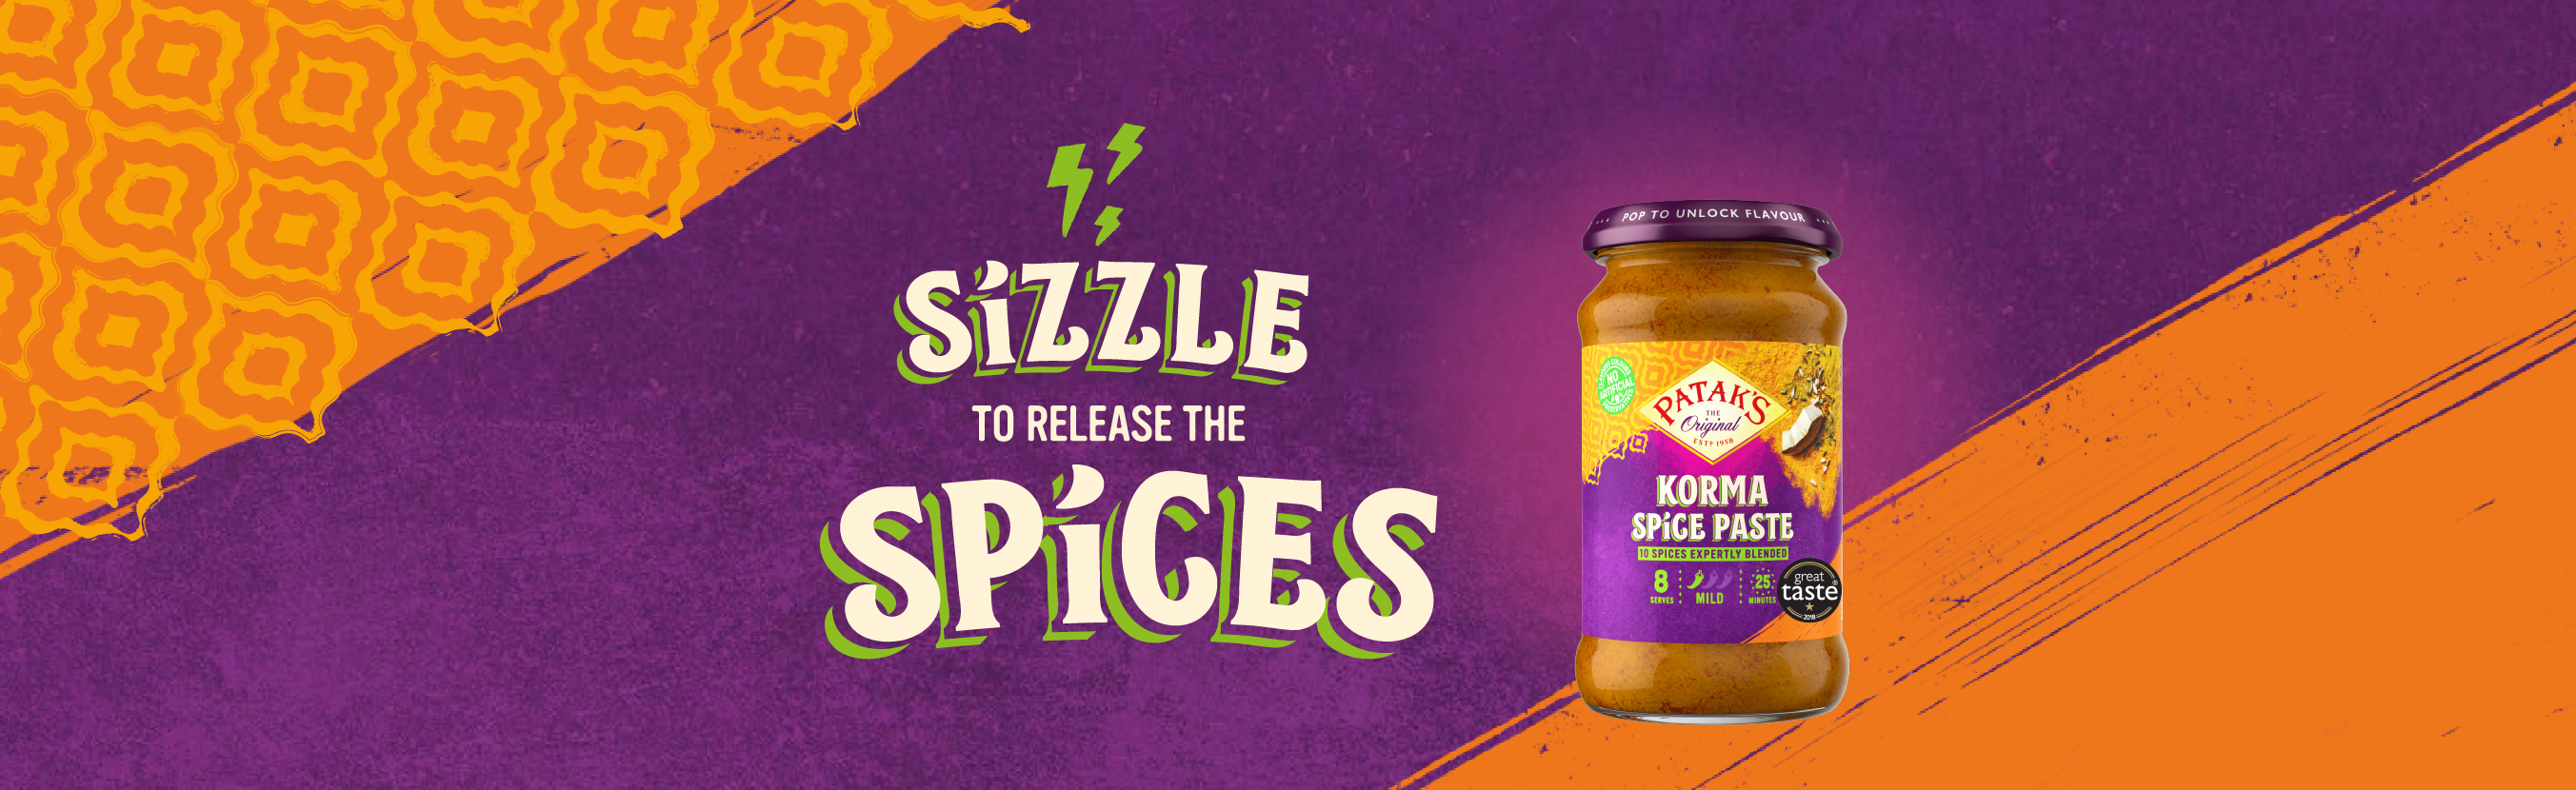 spice-pastes banner image